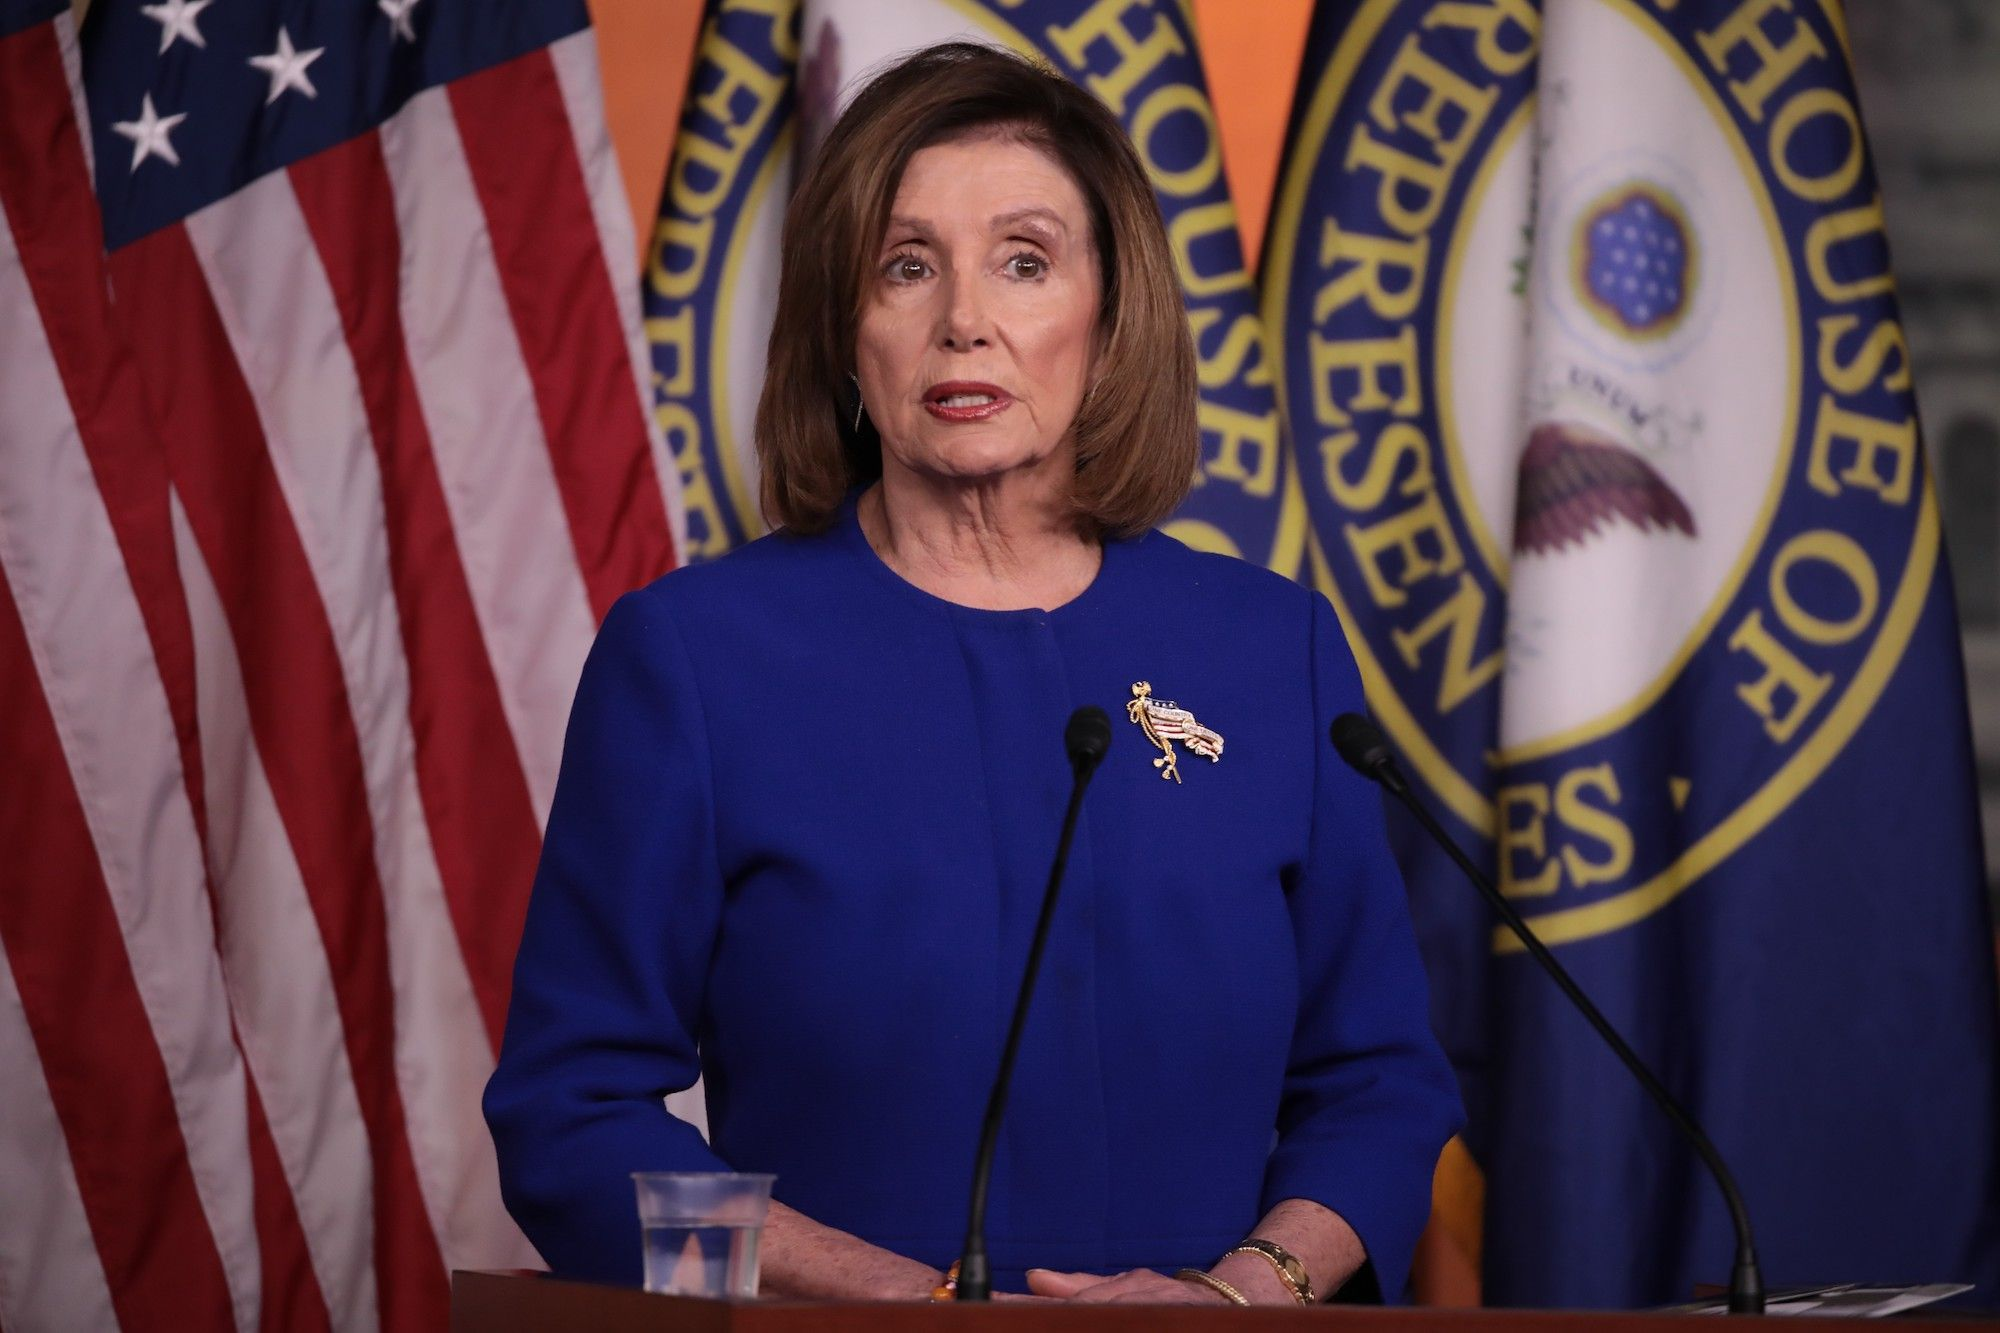 When Nancy Pelosi Says 'When I'm Good and Ready,' She Means When She's Good and Ready